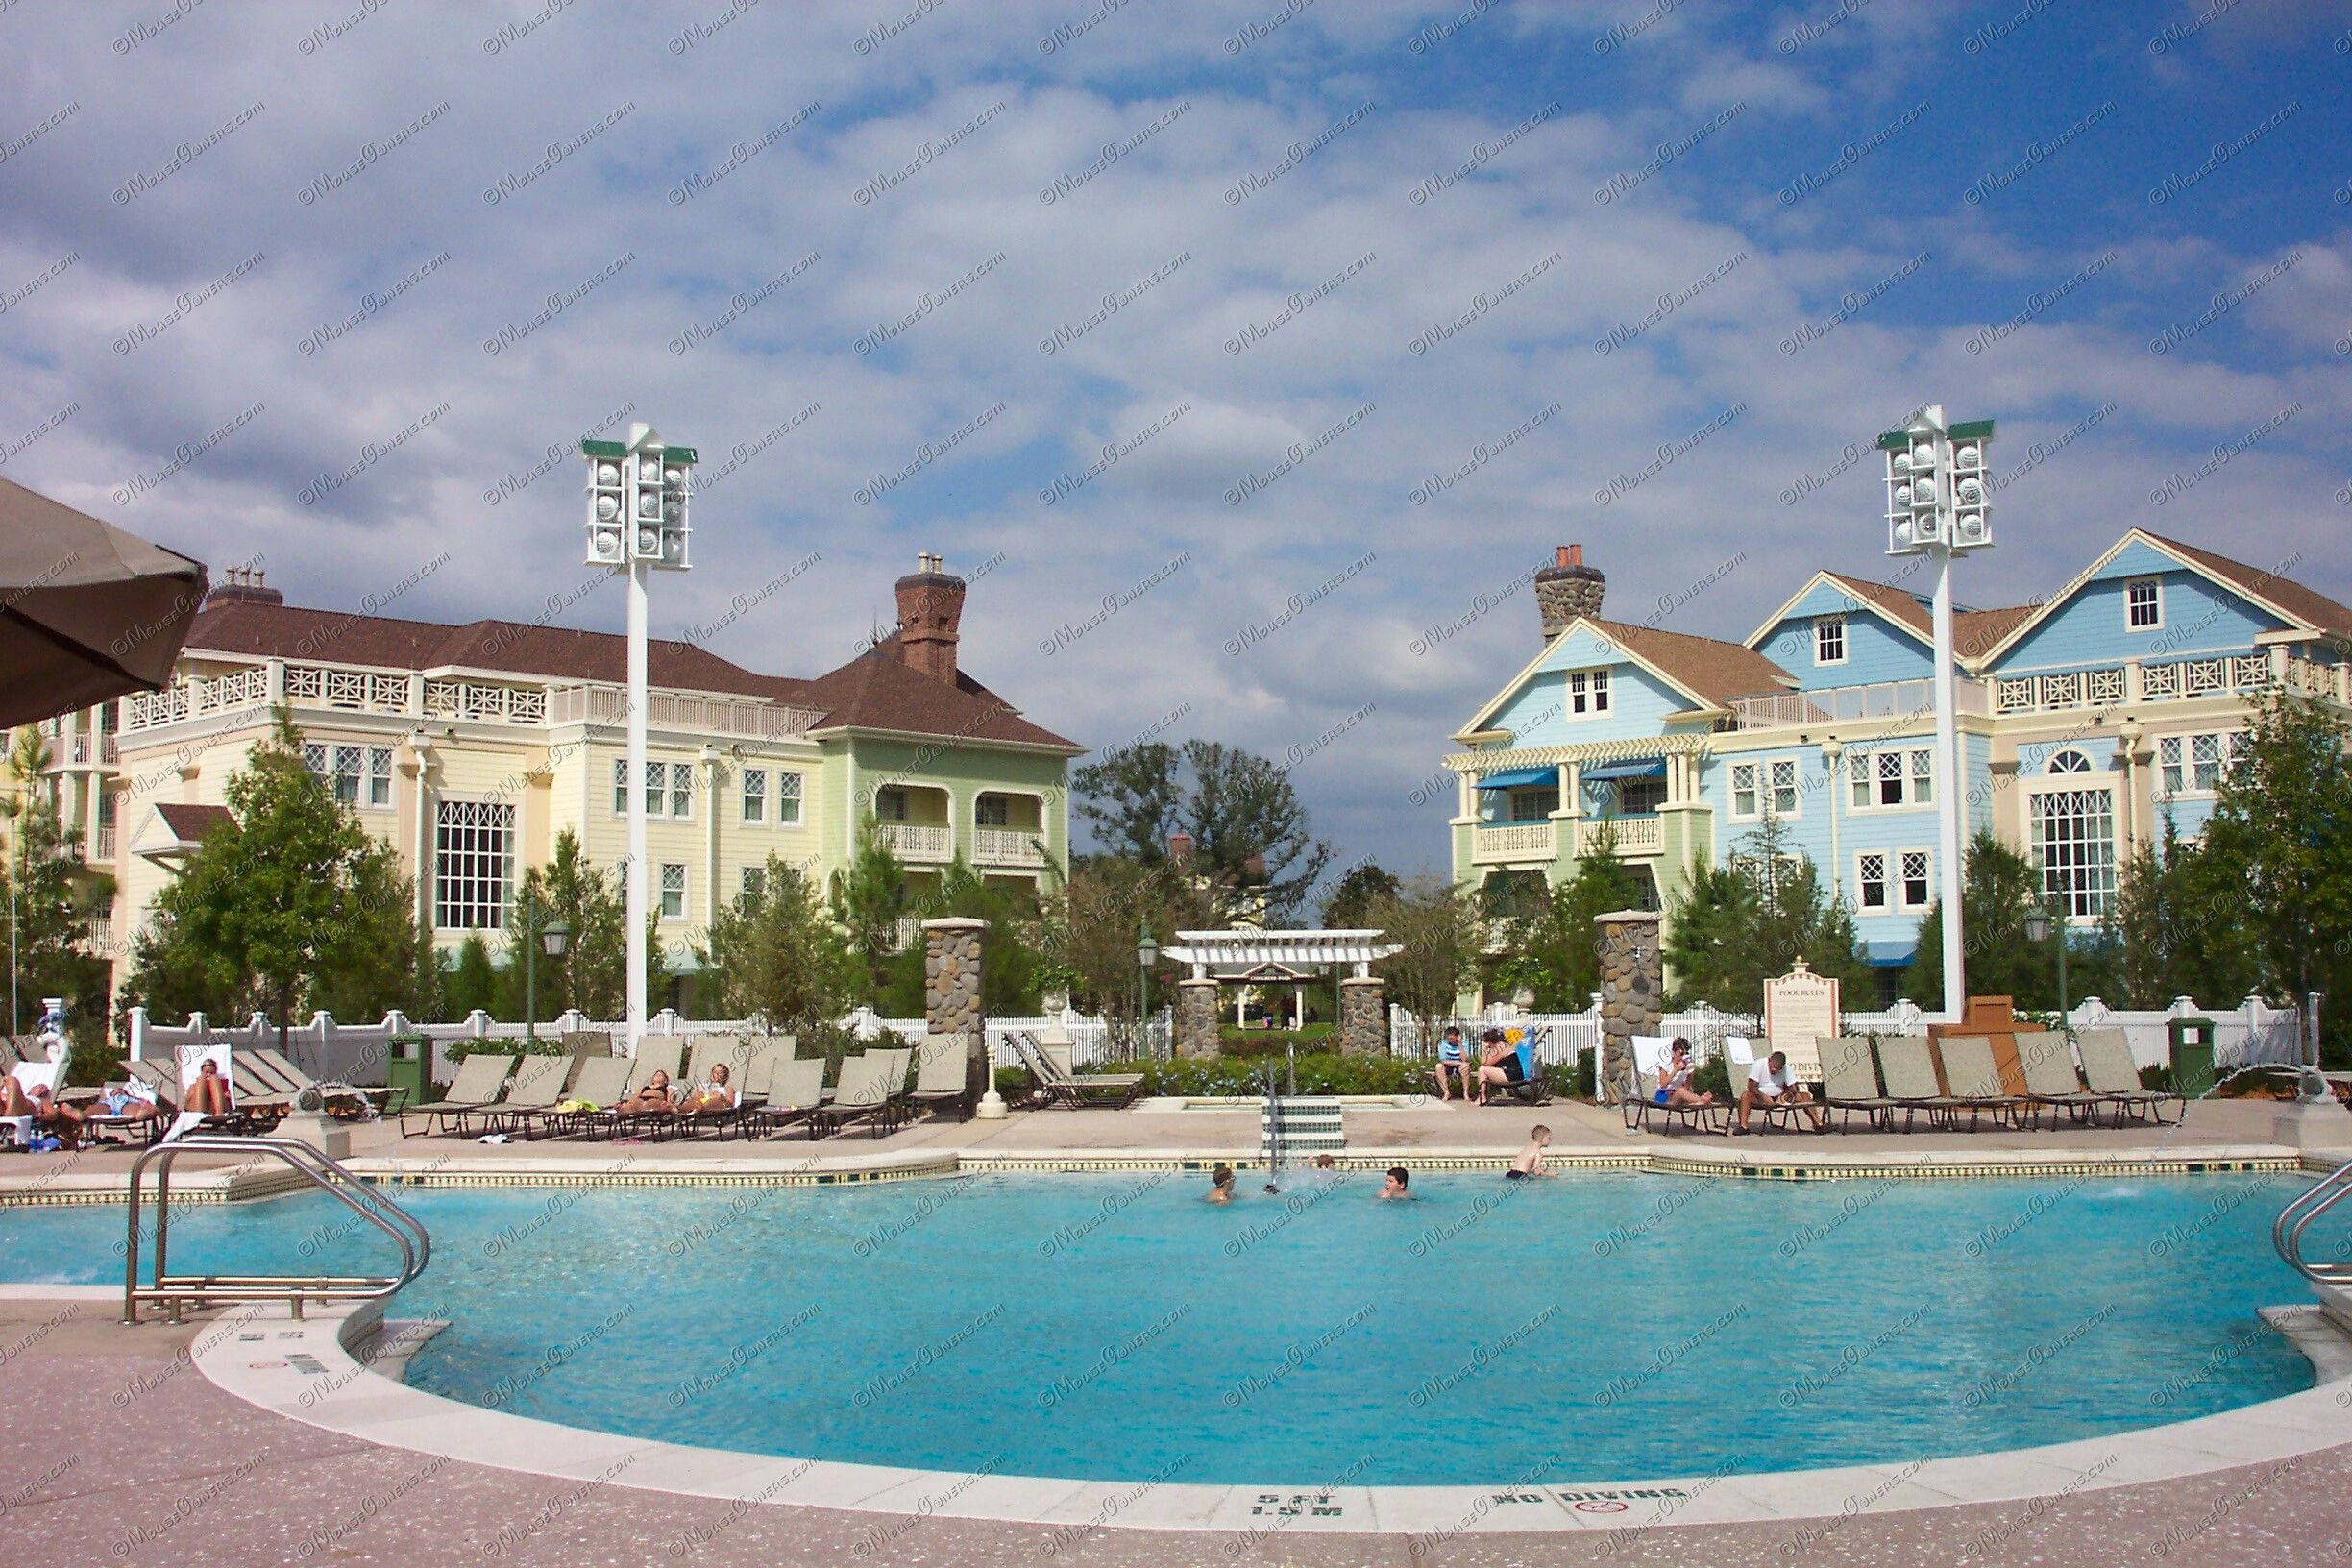 saratoga springs An insider's guide to saratoga springs travel and tourism plan a trip, find attractions, festivals, concerts, events, things to do and places to explore.